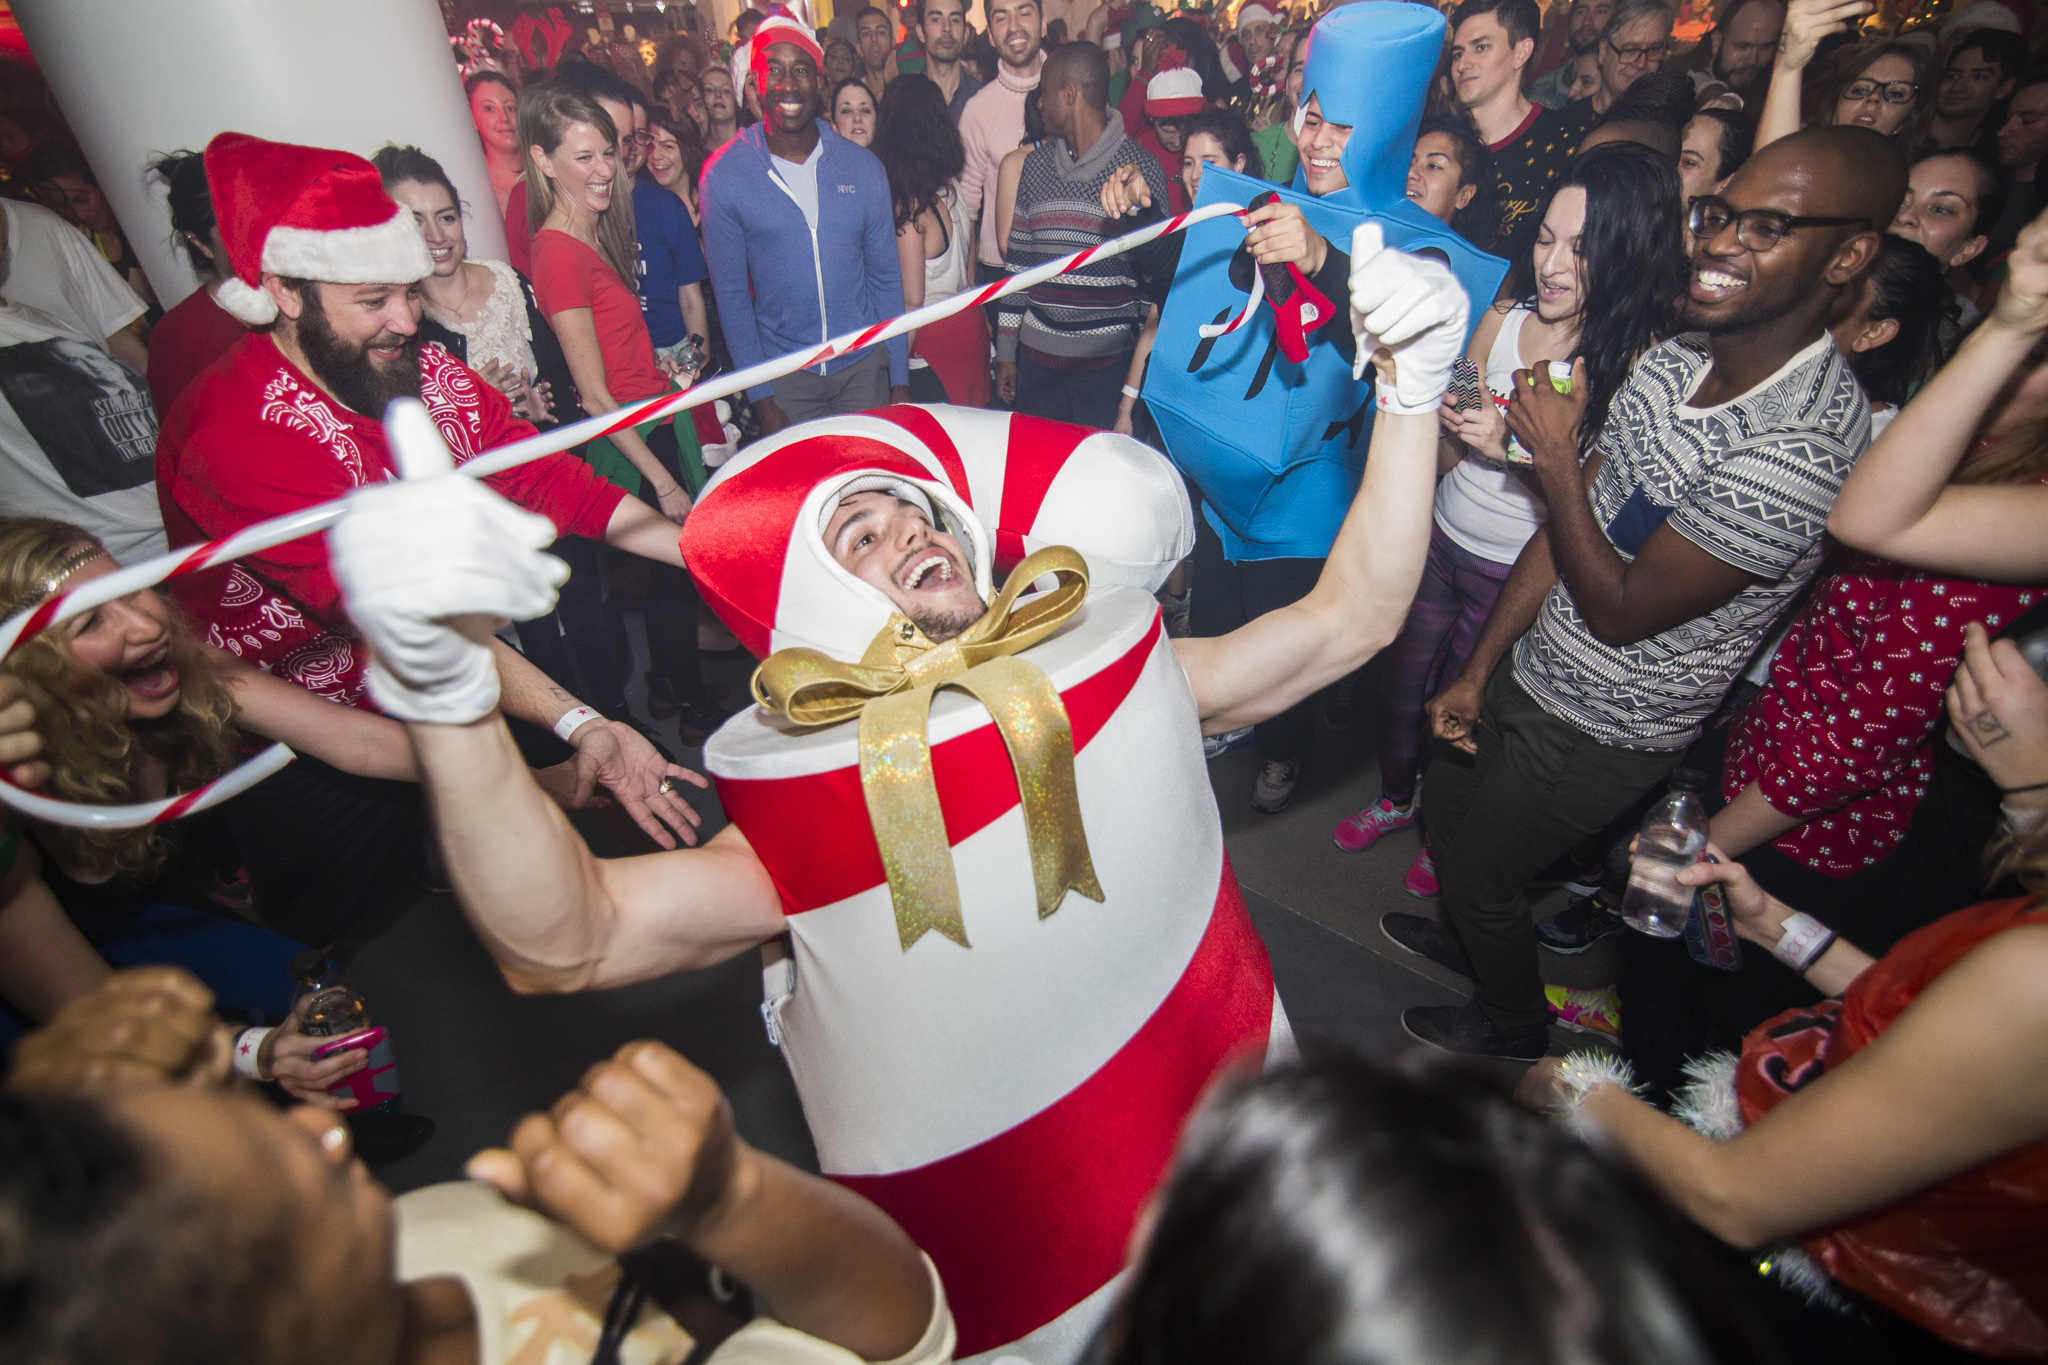 The dance floor at Macy's holiday-themed Daybreaker event in December 2015.